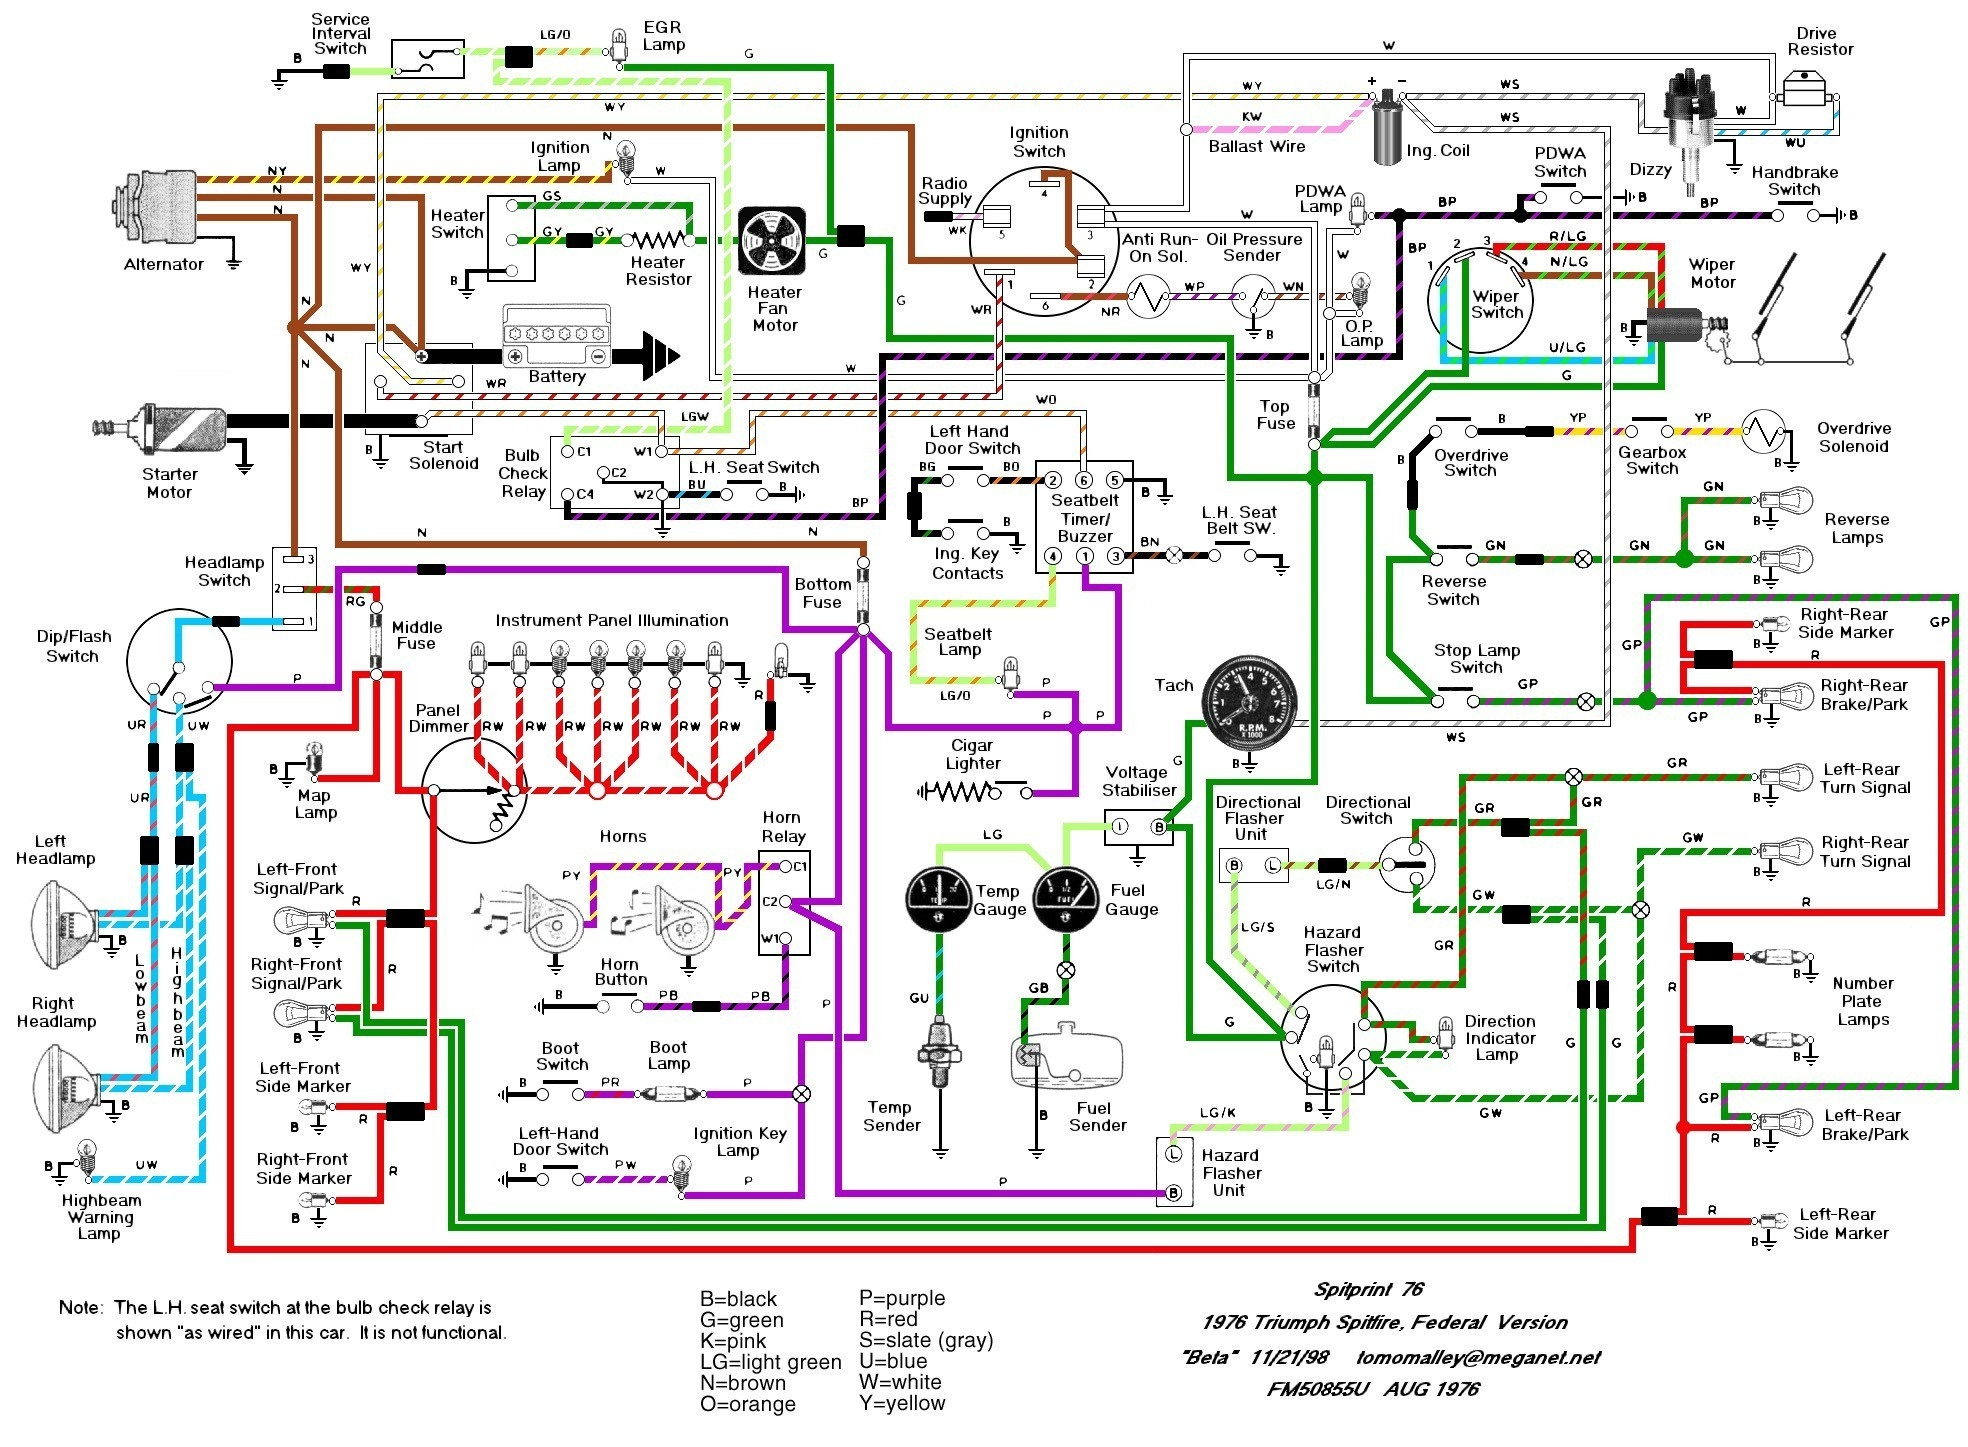 auto electrical wiring diagram software home electrical wiring diagram software new circuit diagram software download free valid free electrical diagram 11d auto electrical wiring diagram software free wiring diagram